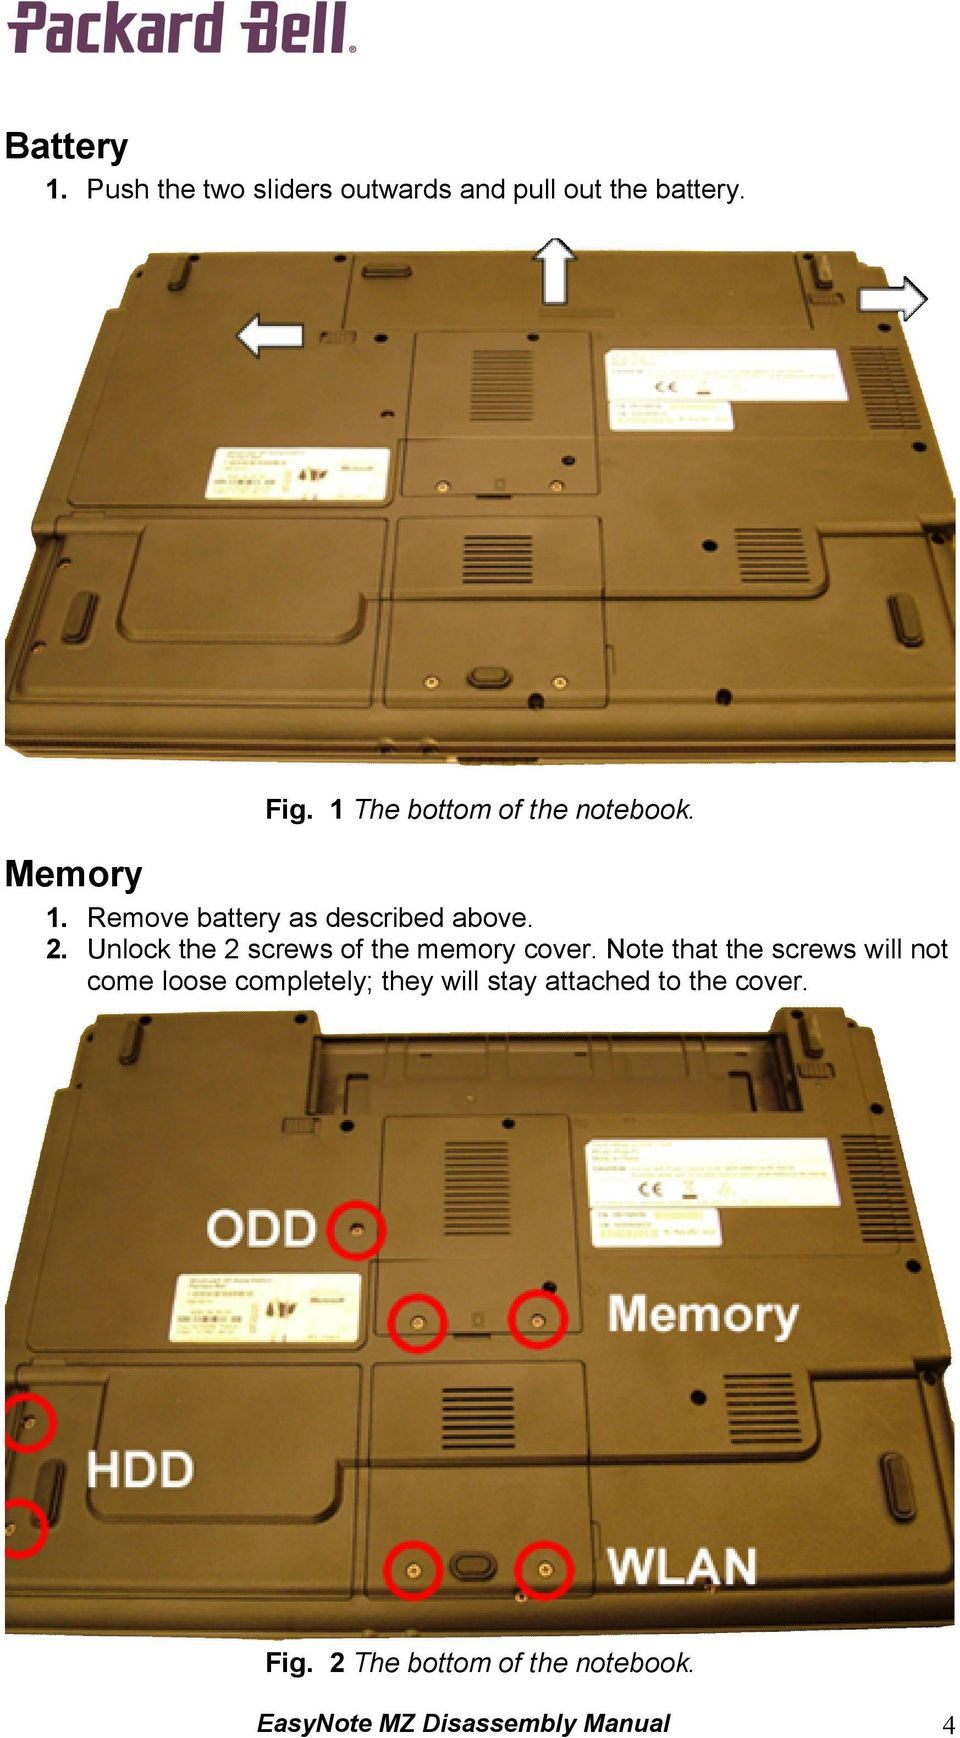 Unlock the 2 screws of the memory cover.